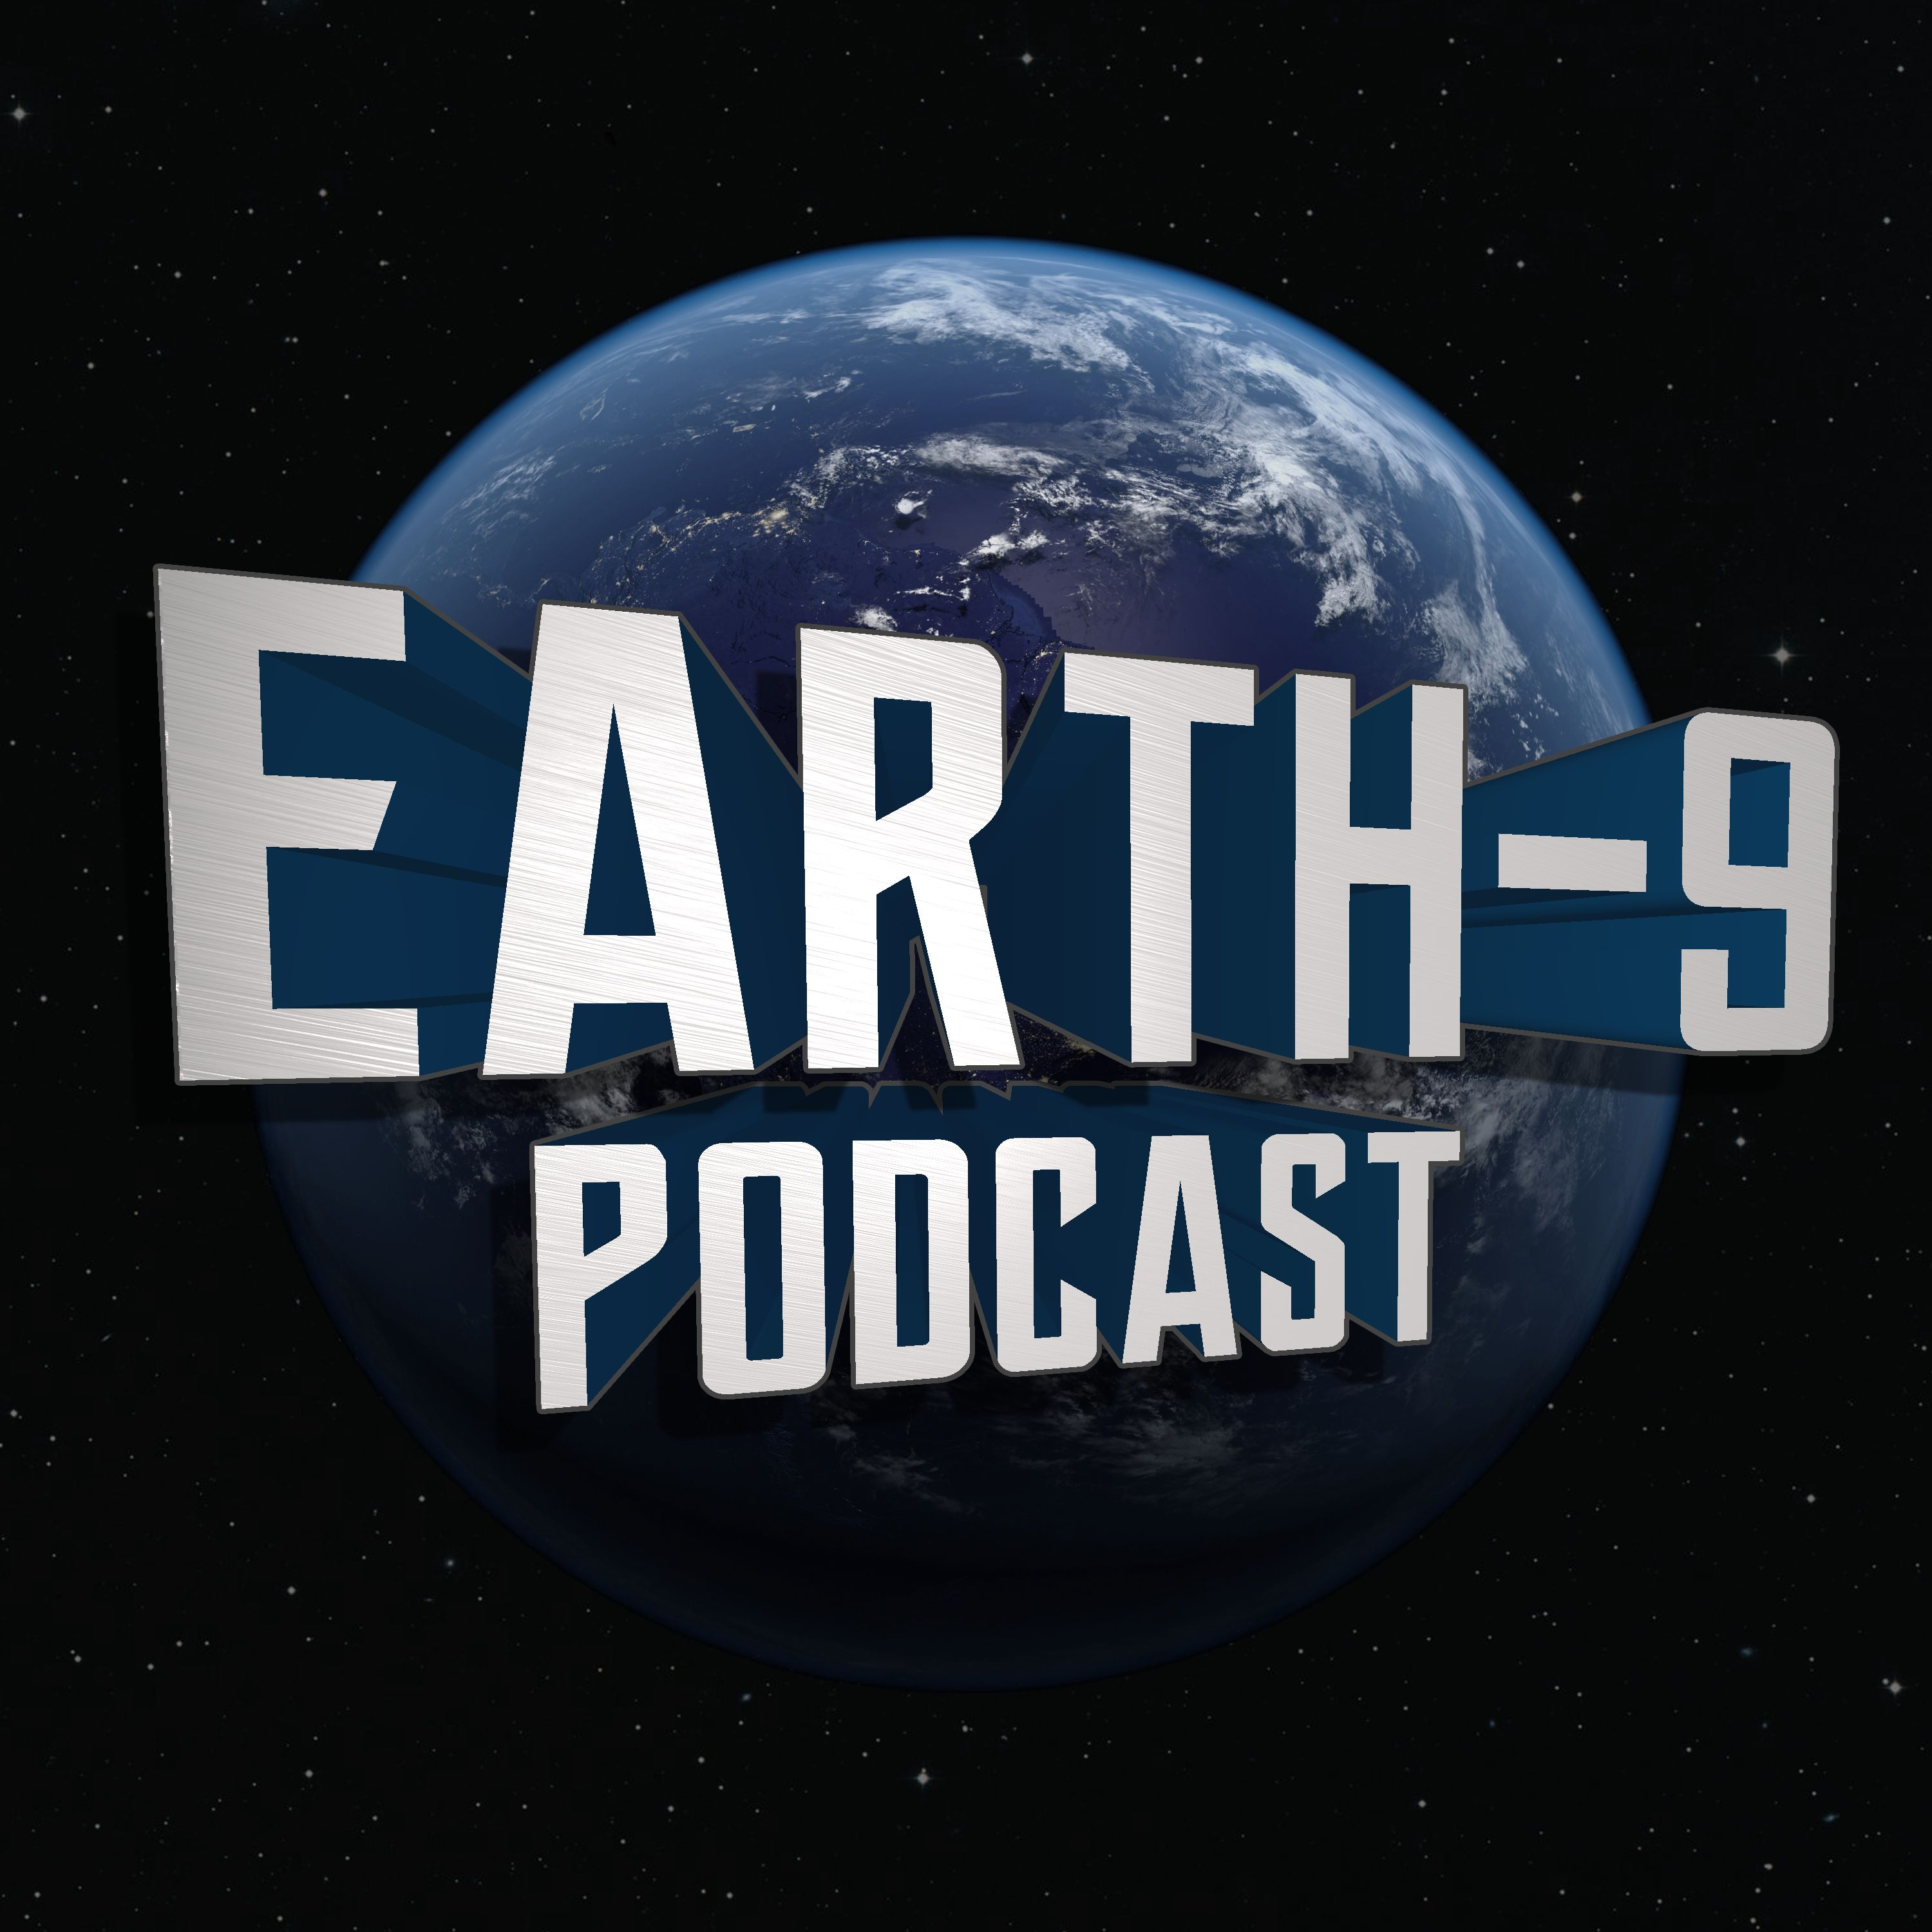 Earth-9 Podcast